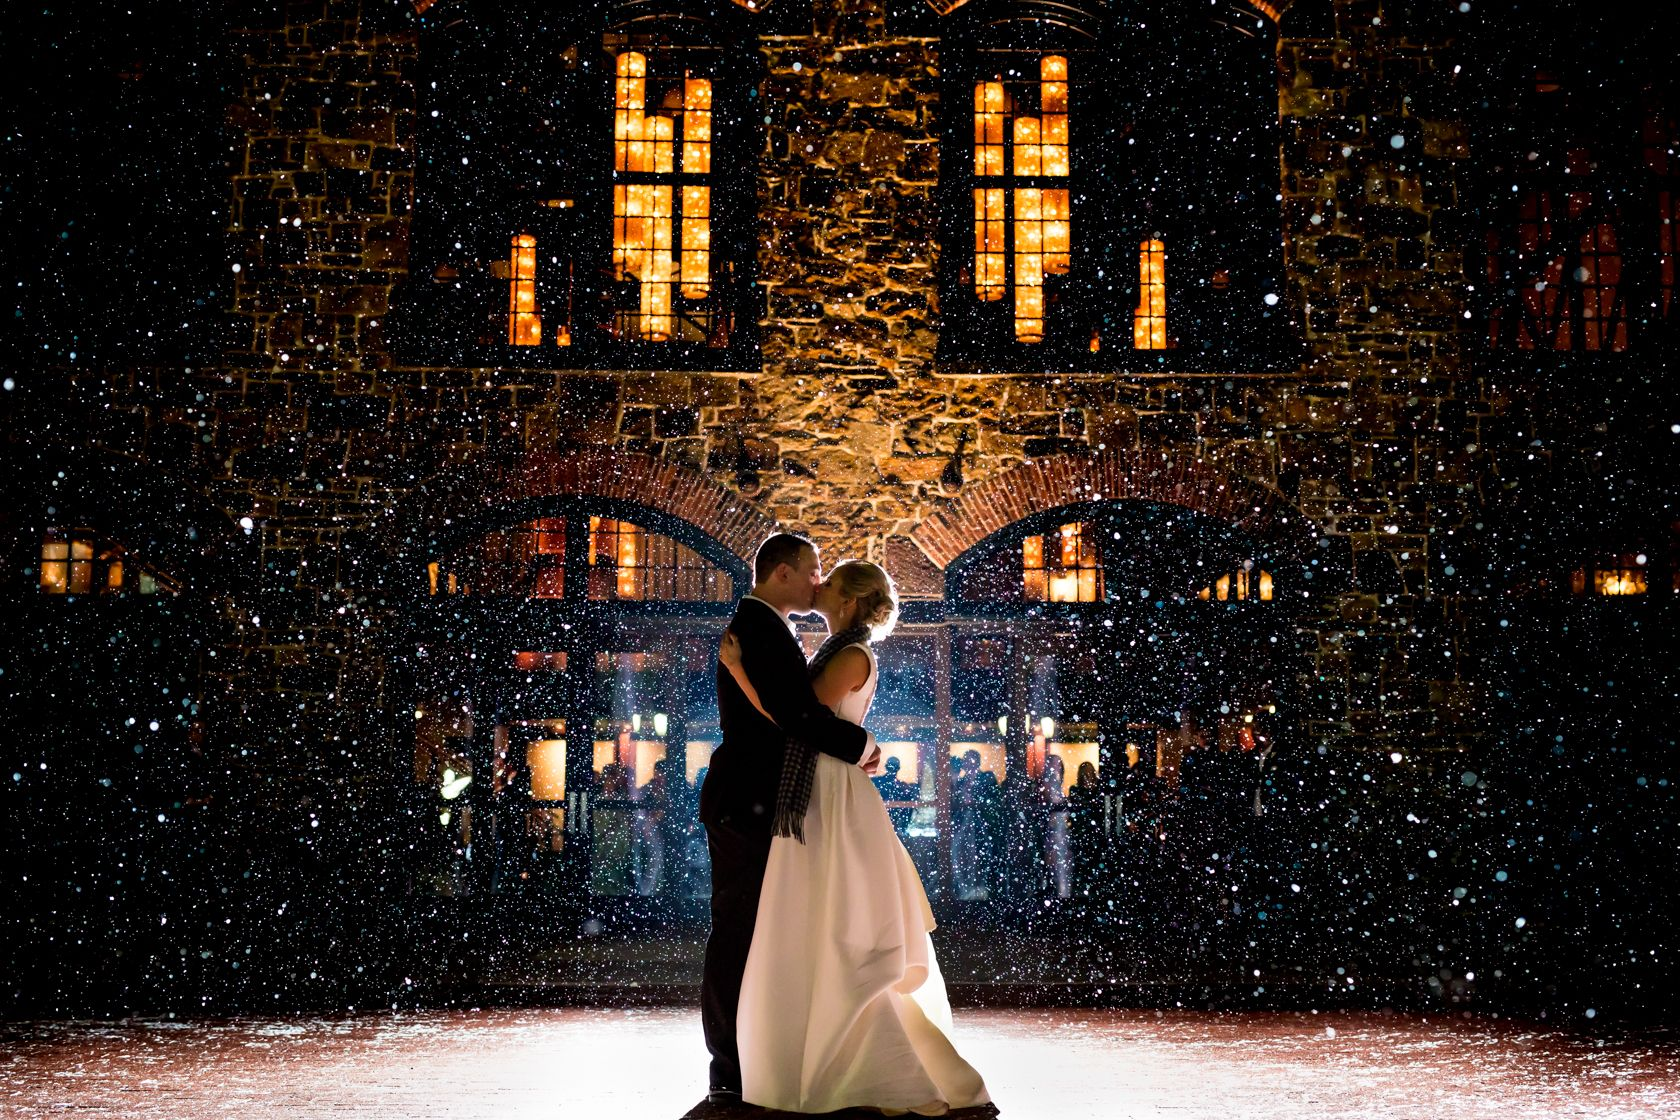 Perfect ending to a winter wonderland themed wedding